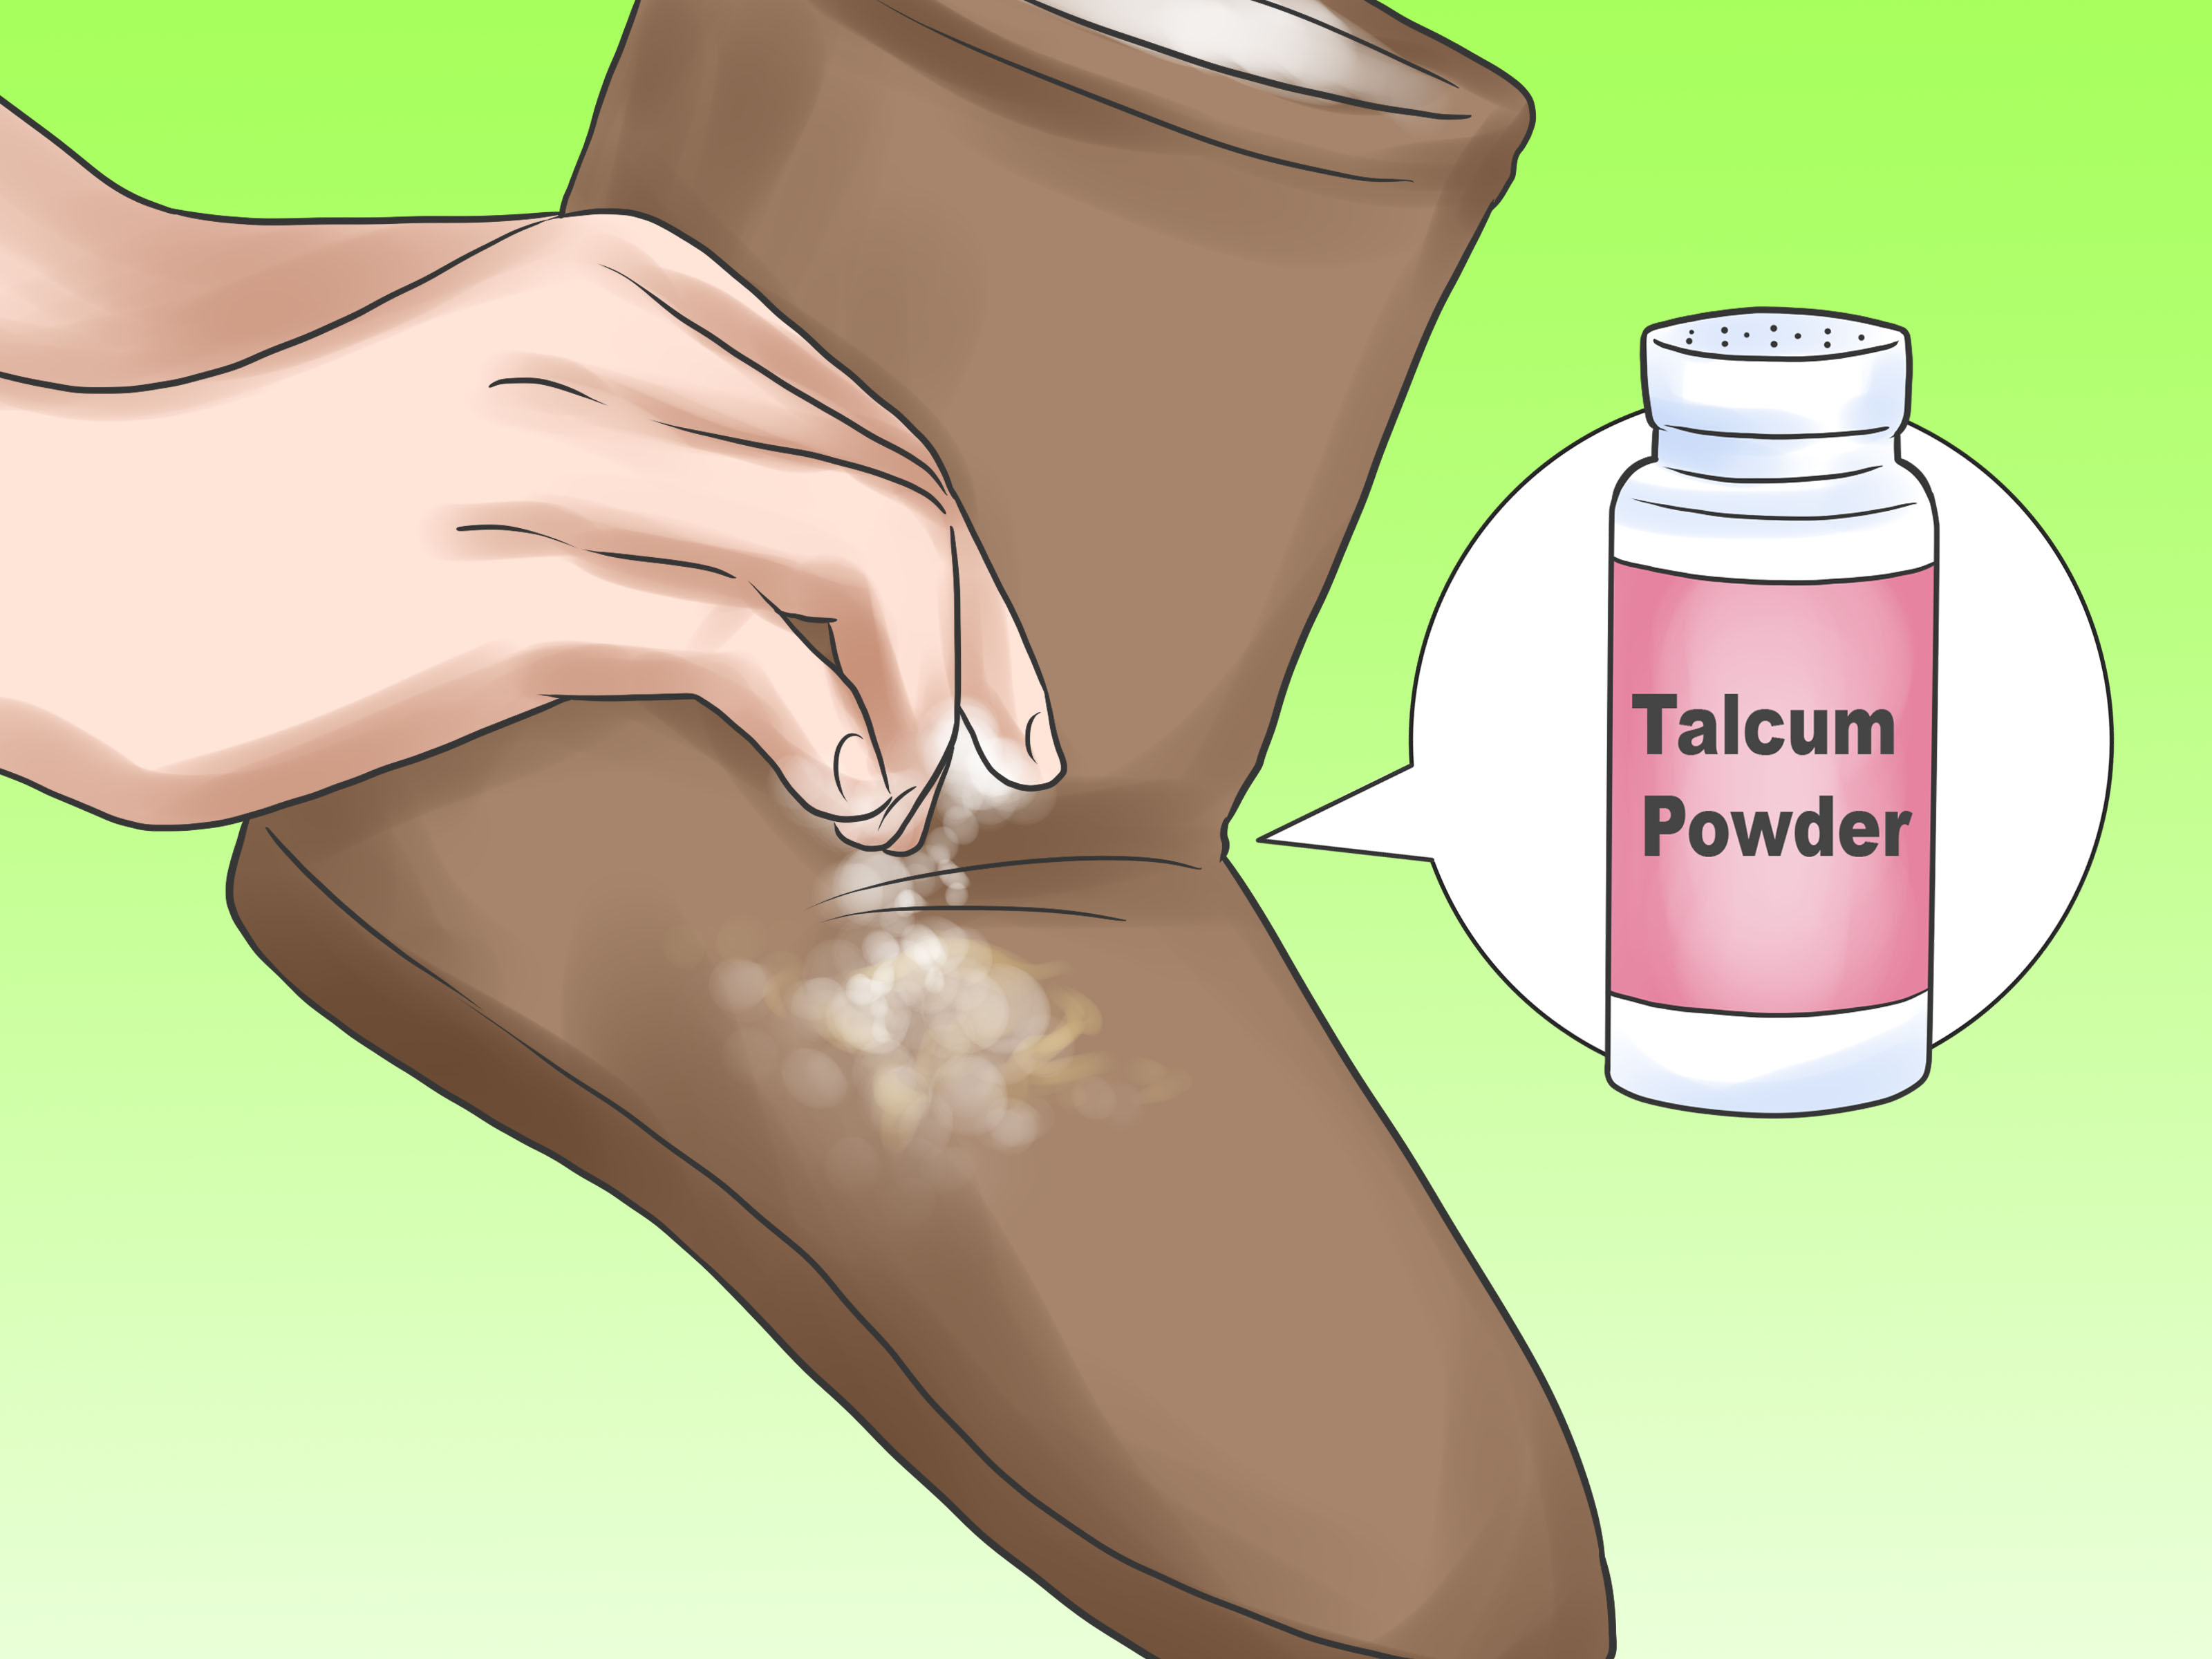 Le Meilleur 3 Ways To Wear Ugg Boots Wikihow Ce Mois Ci